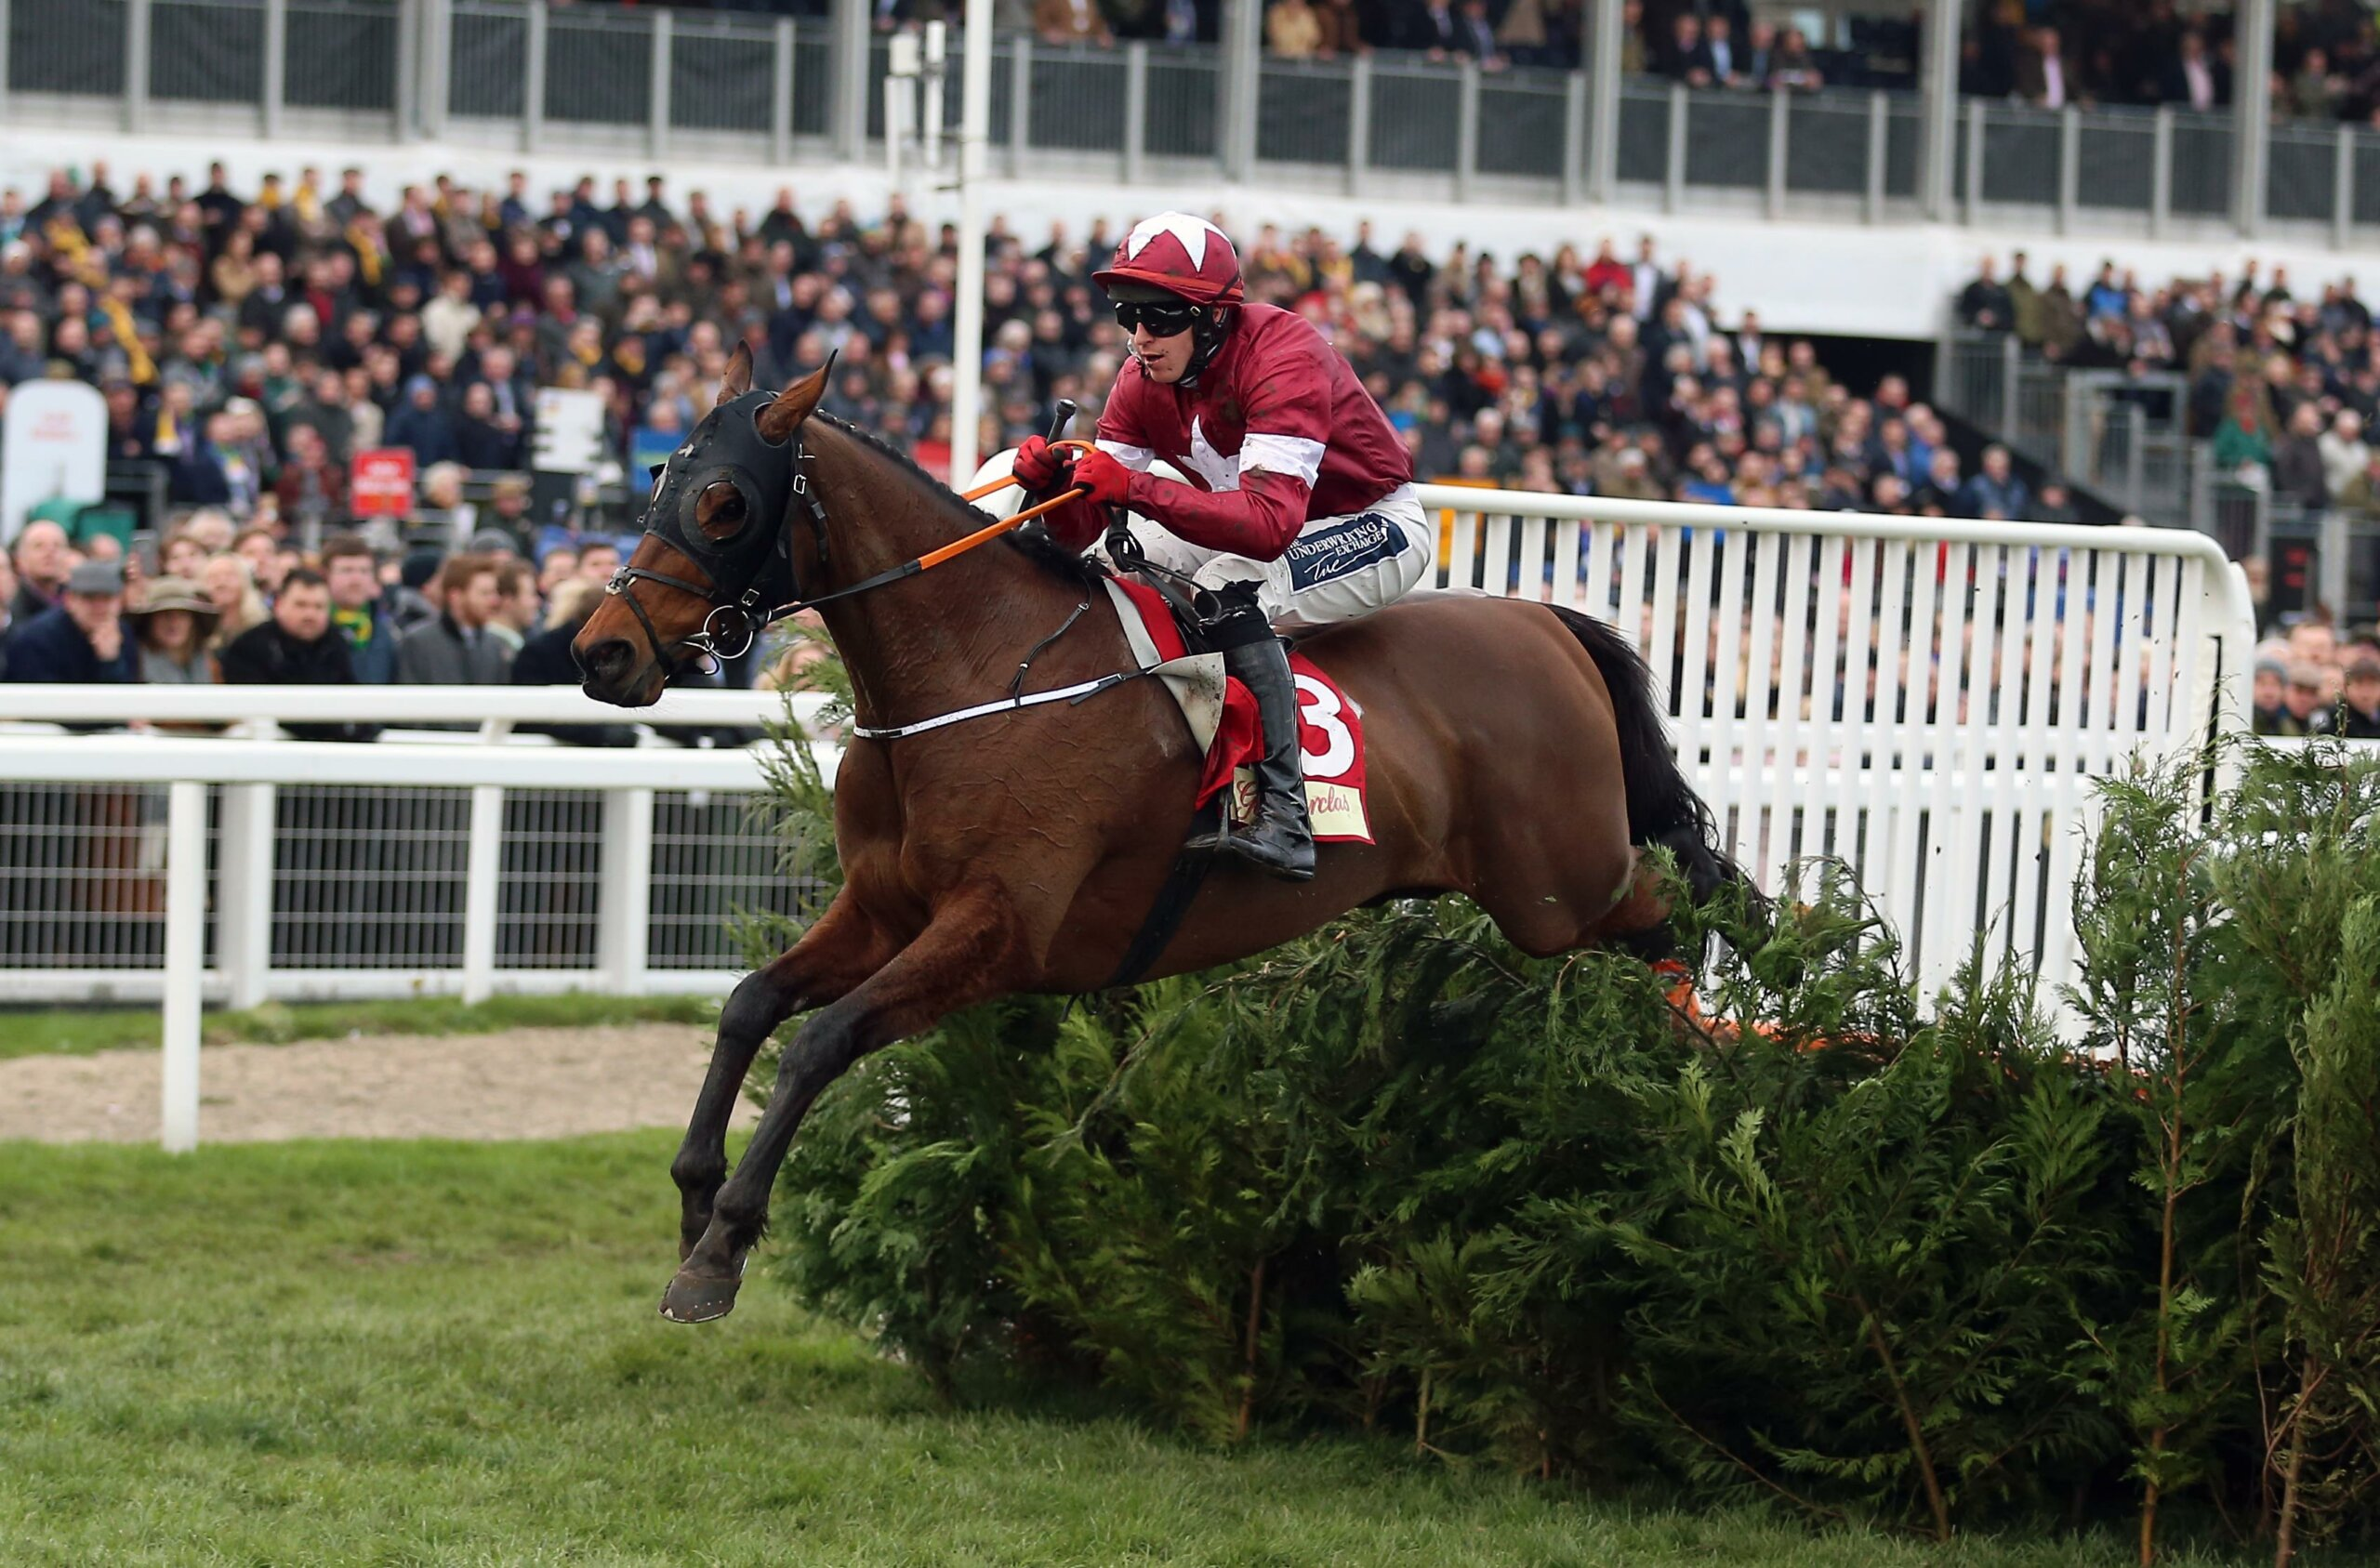 Tiger Roll: the little legend seekis another win in the Cross-Country Chase as he prepares for the Grand National